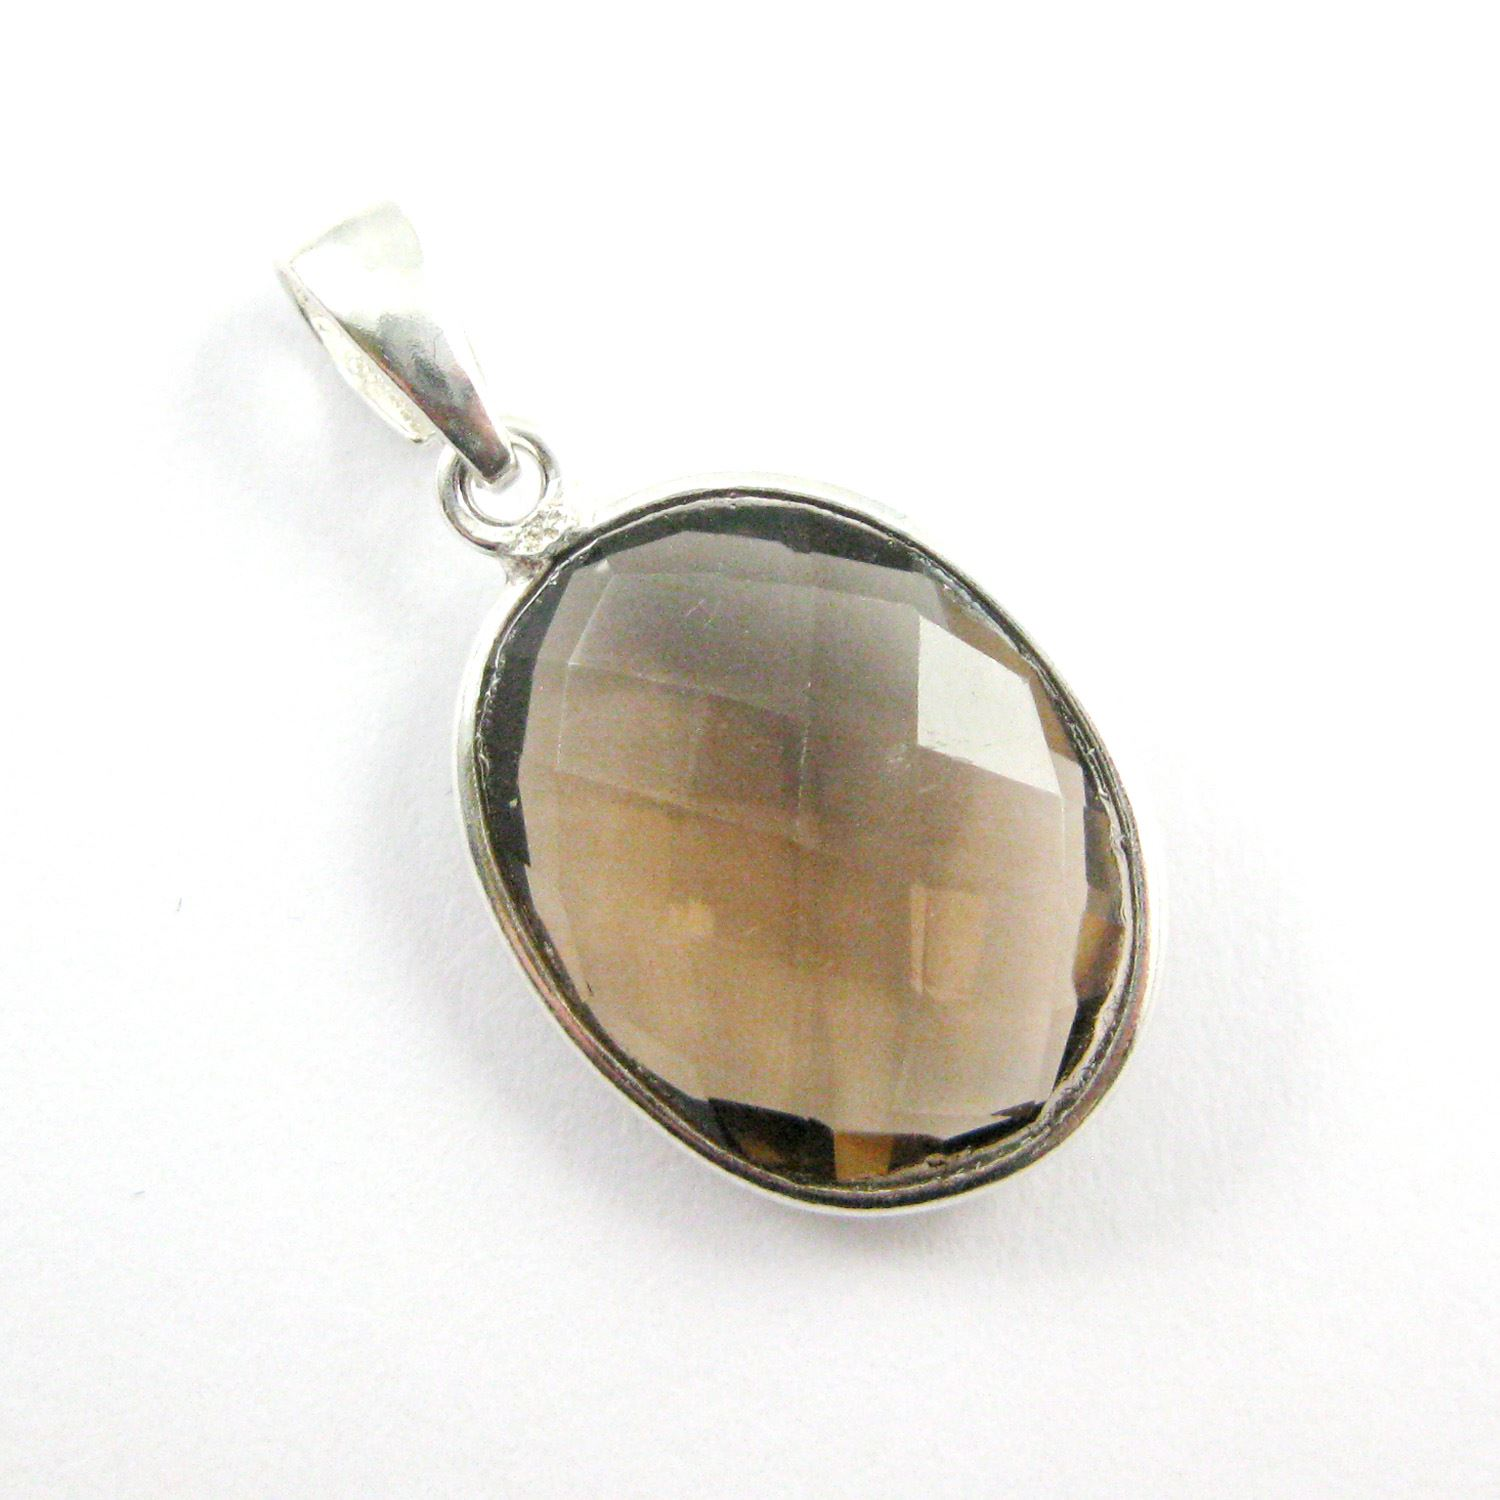 Bezel Gemstone Pendant with Bail - Sterling Silver Oval Gem Pendant - Ready for Necklace - 28mm - Smokey Quartz